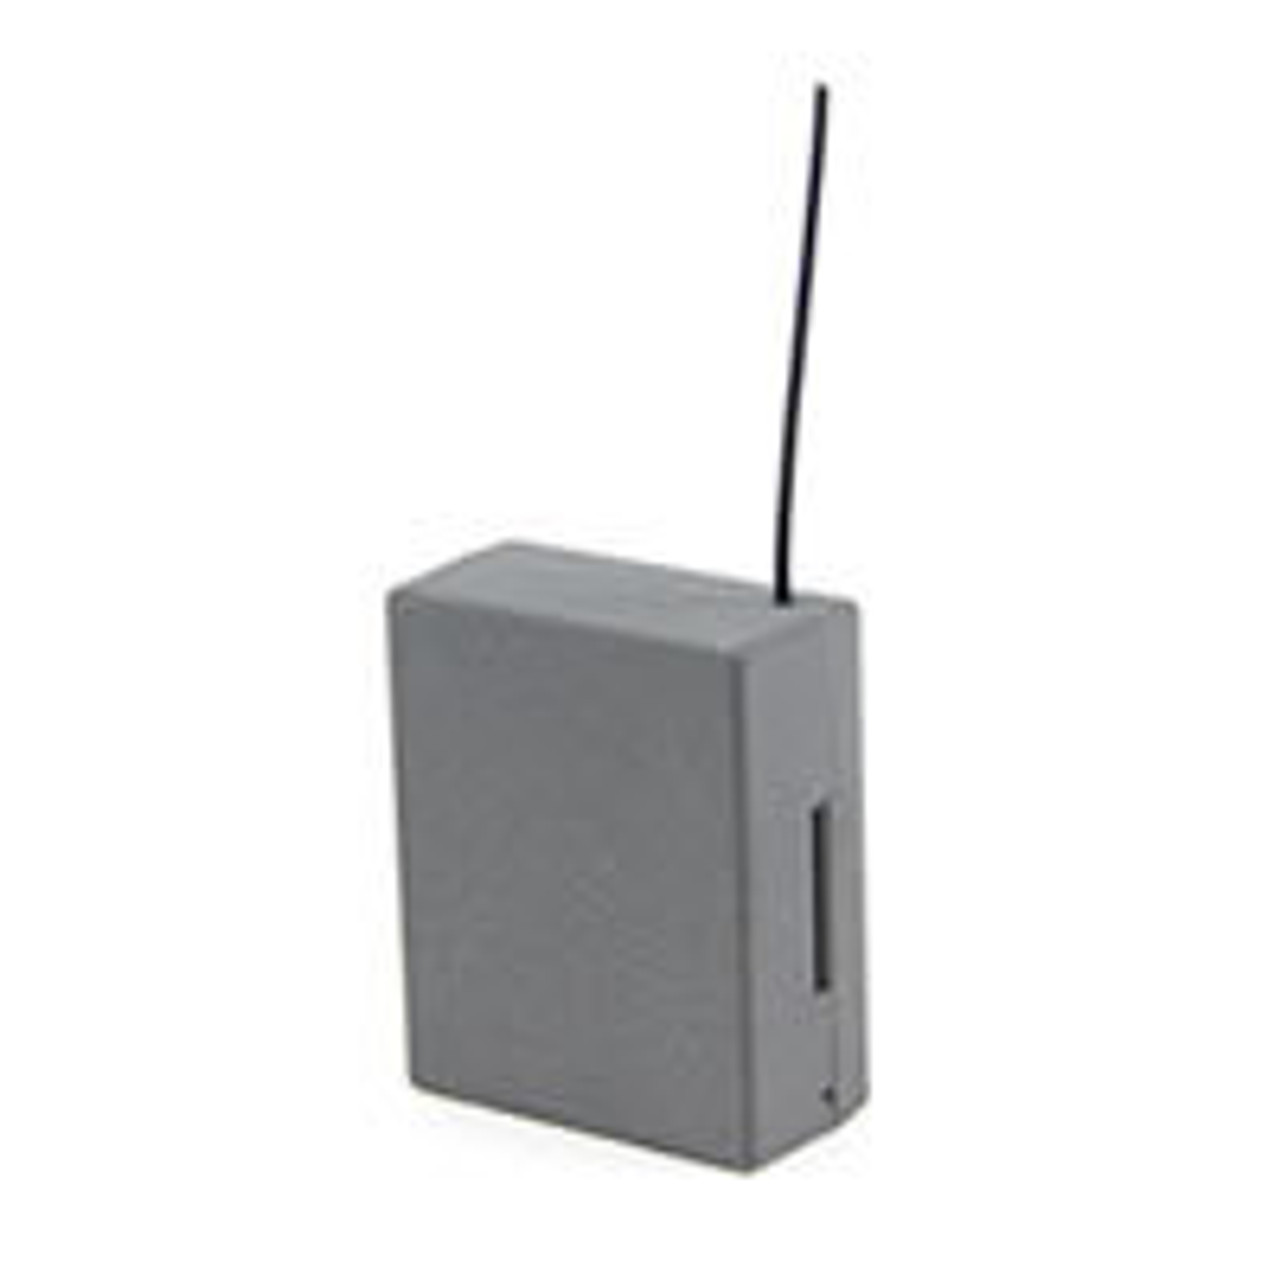 GSM Listening Devices